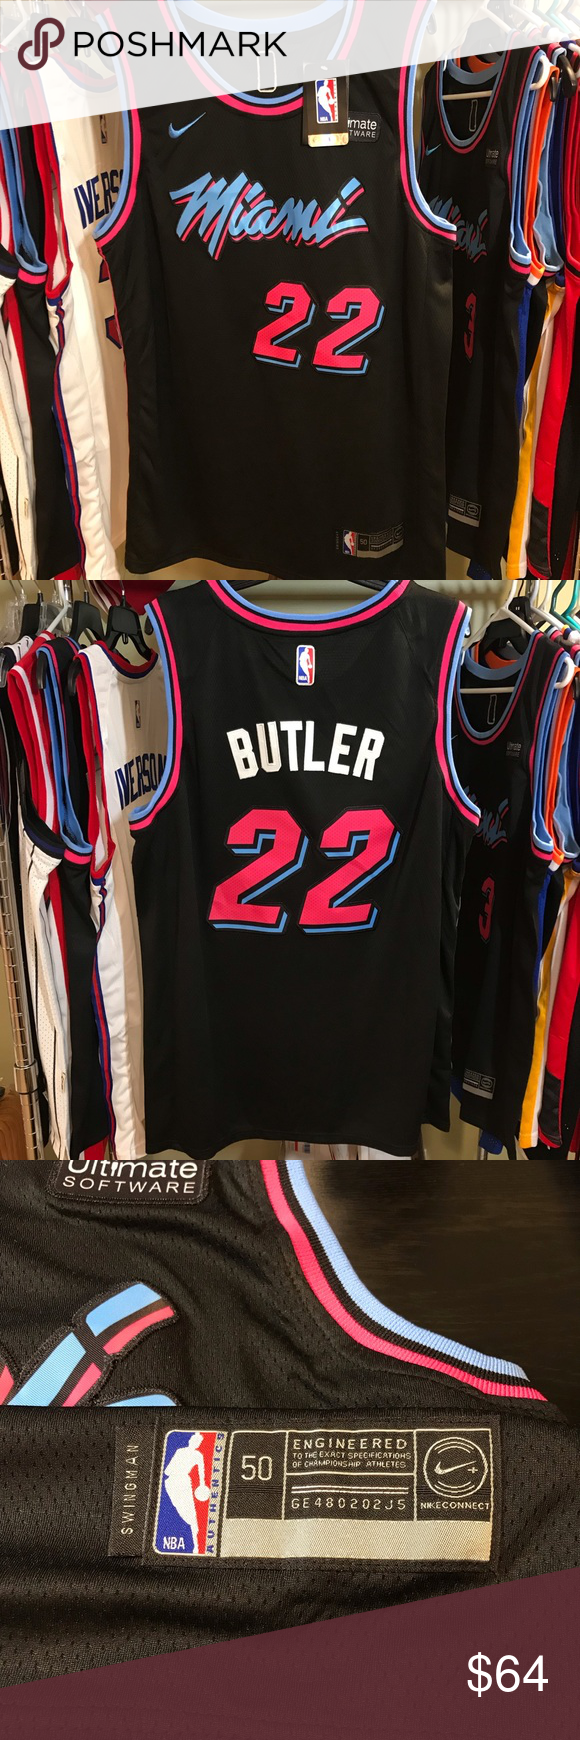 Jimmy Butler Miami Heat Nba Vice City Night Jersey Nike Swingman Size Mens Large Nwt Black Pink Blue To Represent Vintage M Miami Heat Nba Air Jordans Retro